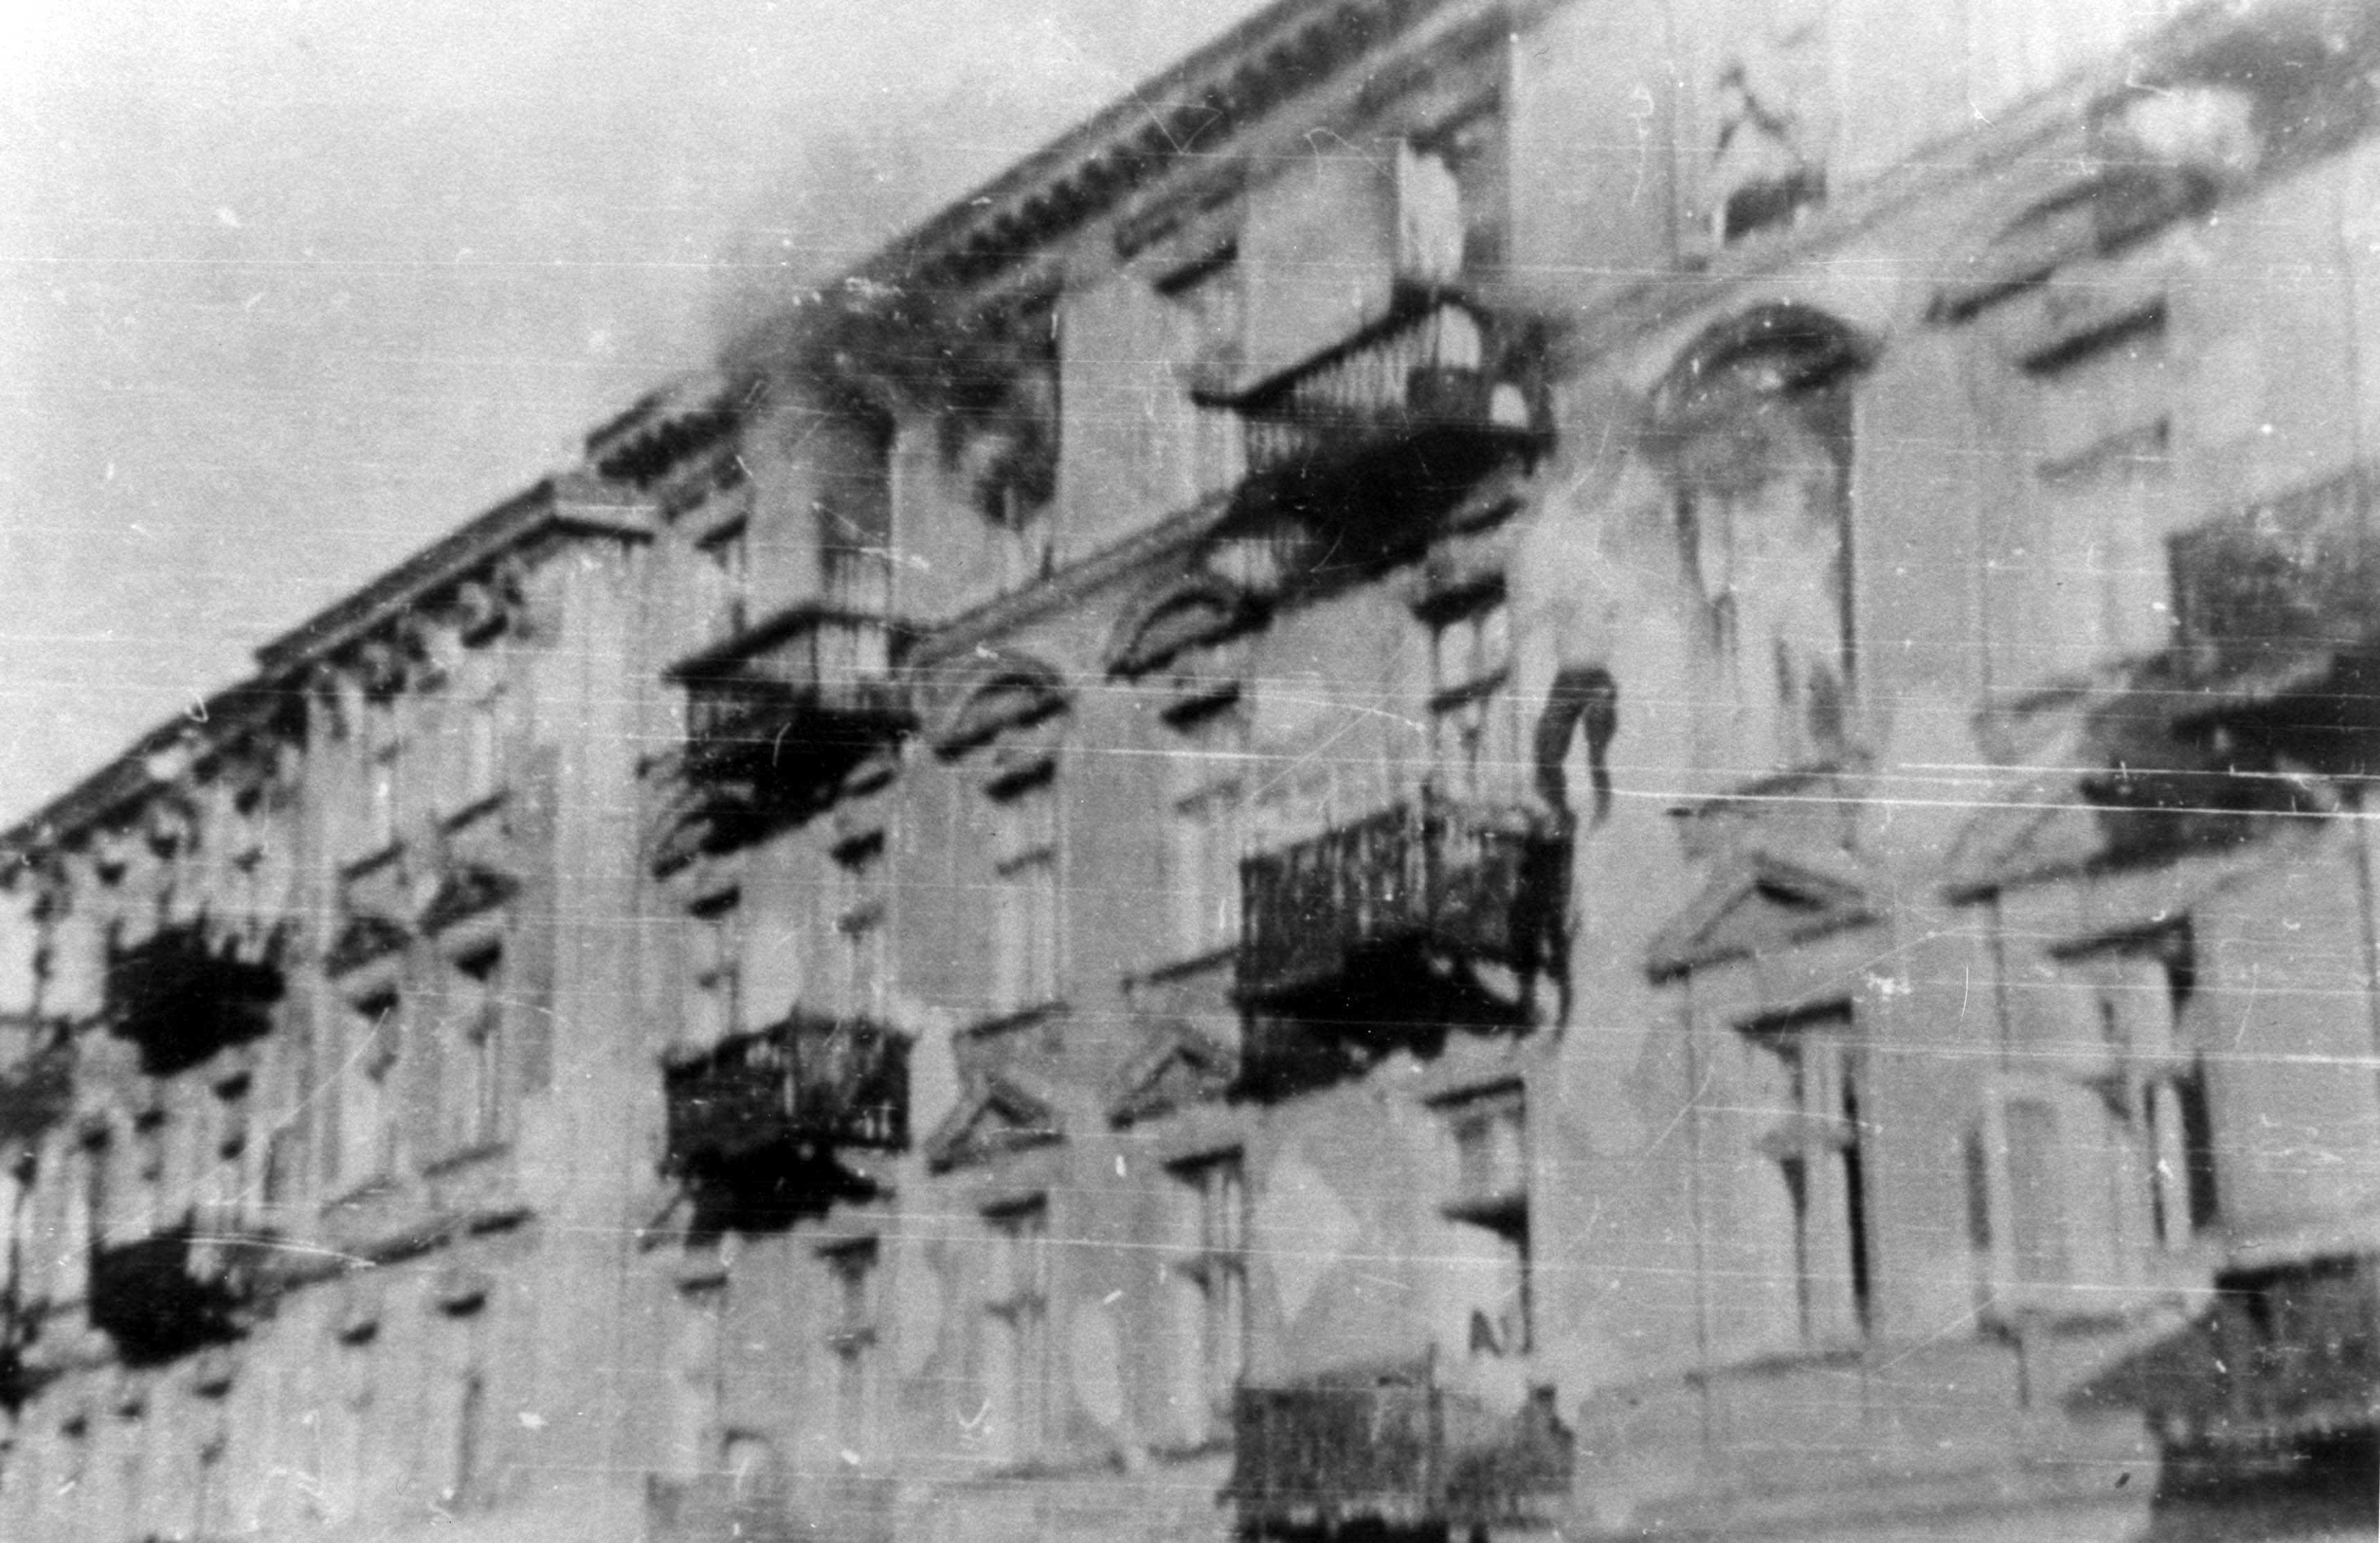 A Jew leaps from a burning building, during the suppression of the Warsaw Ghetto uprising